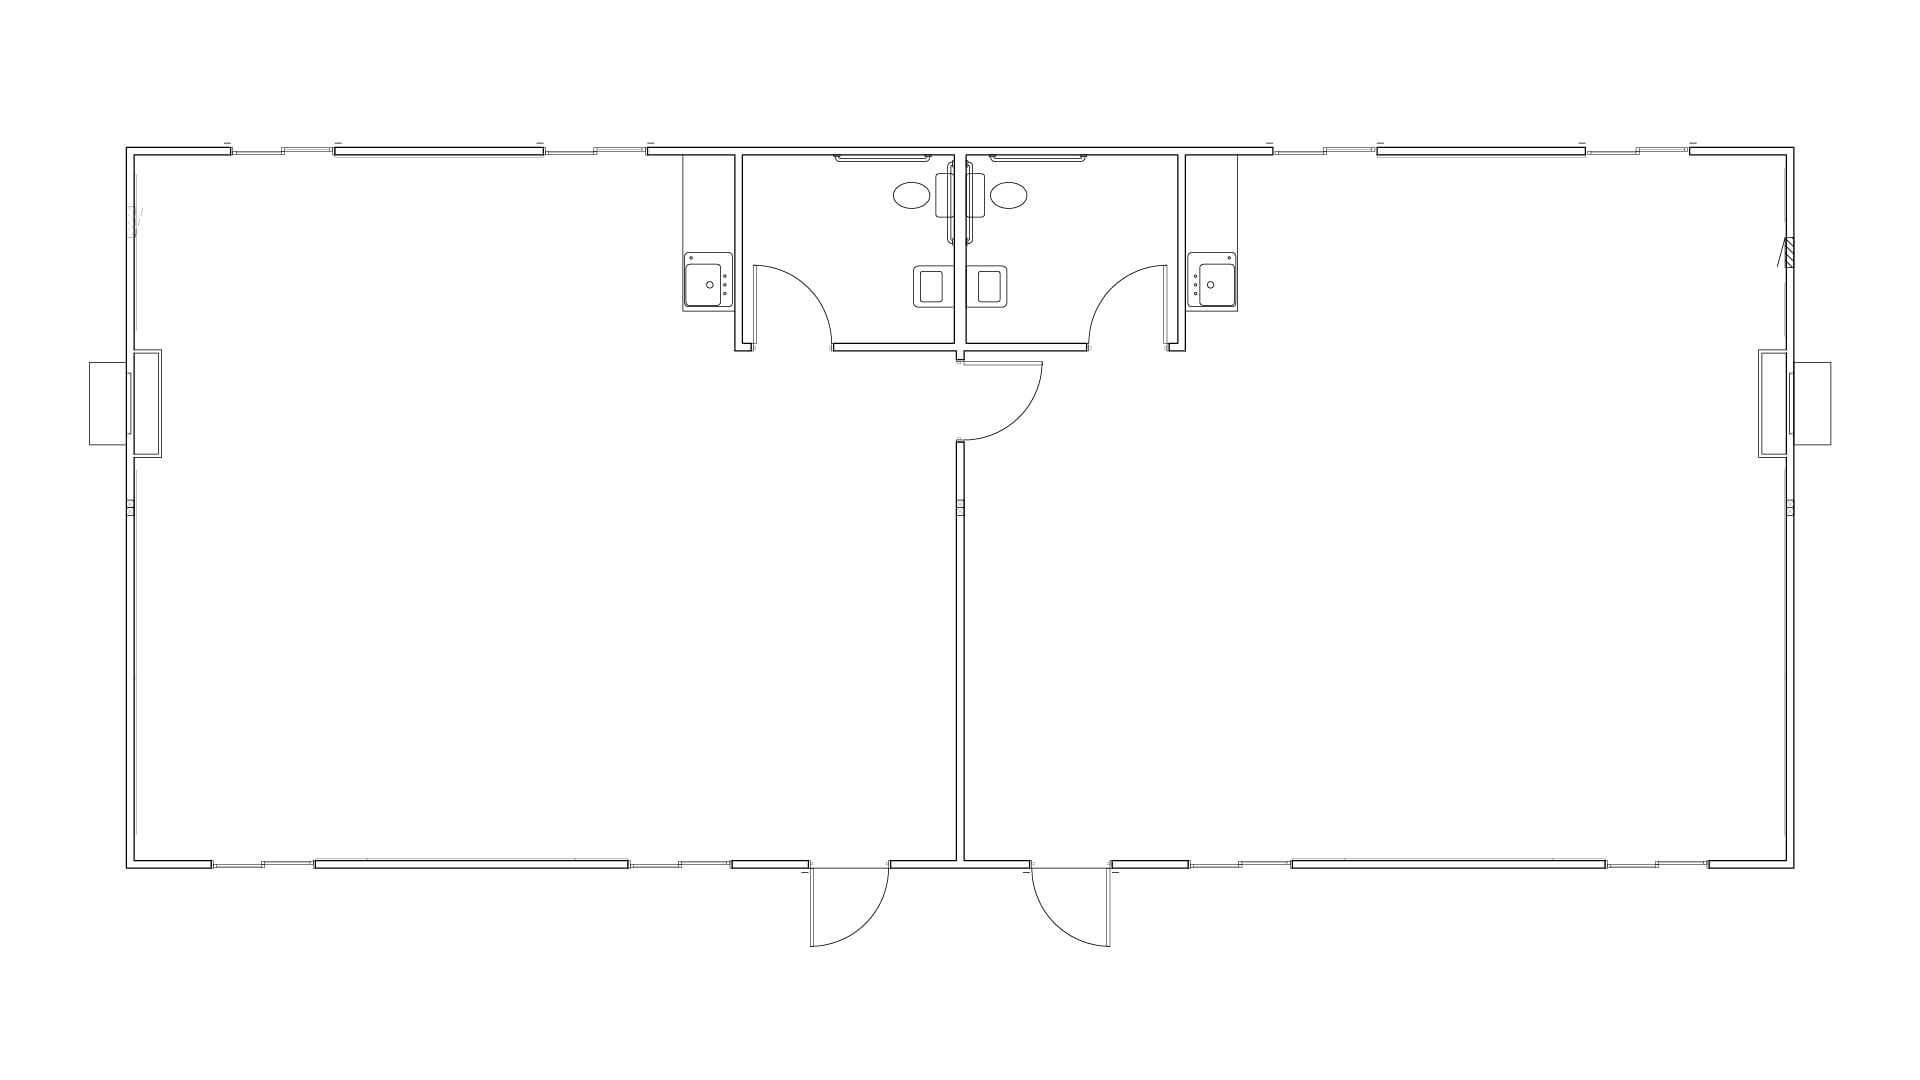 Modular Building Floor Plan